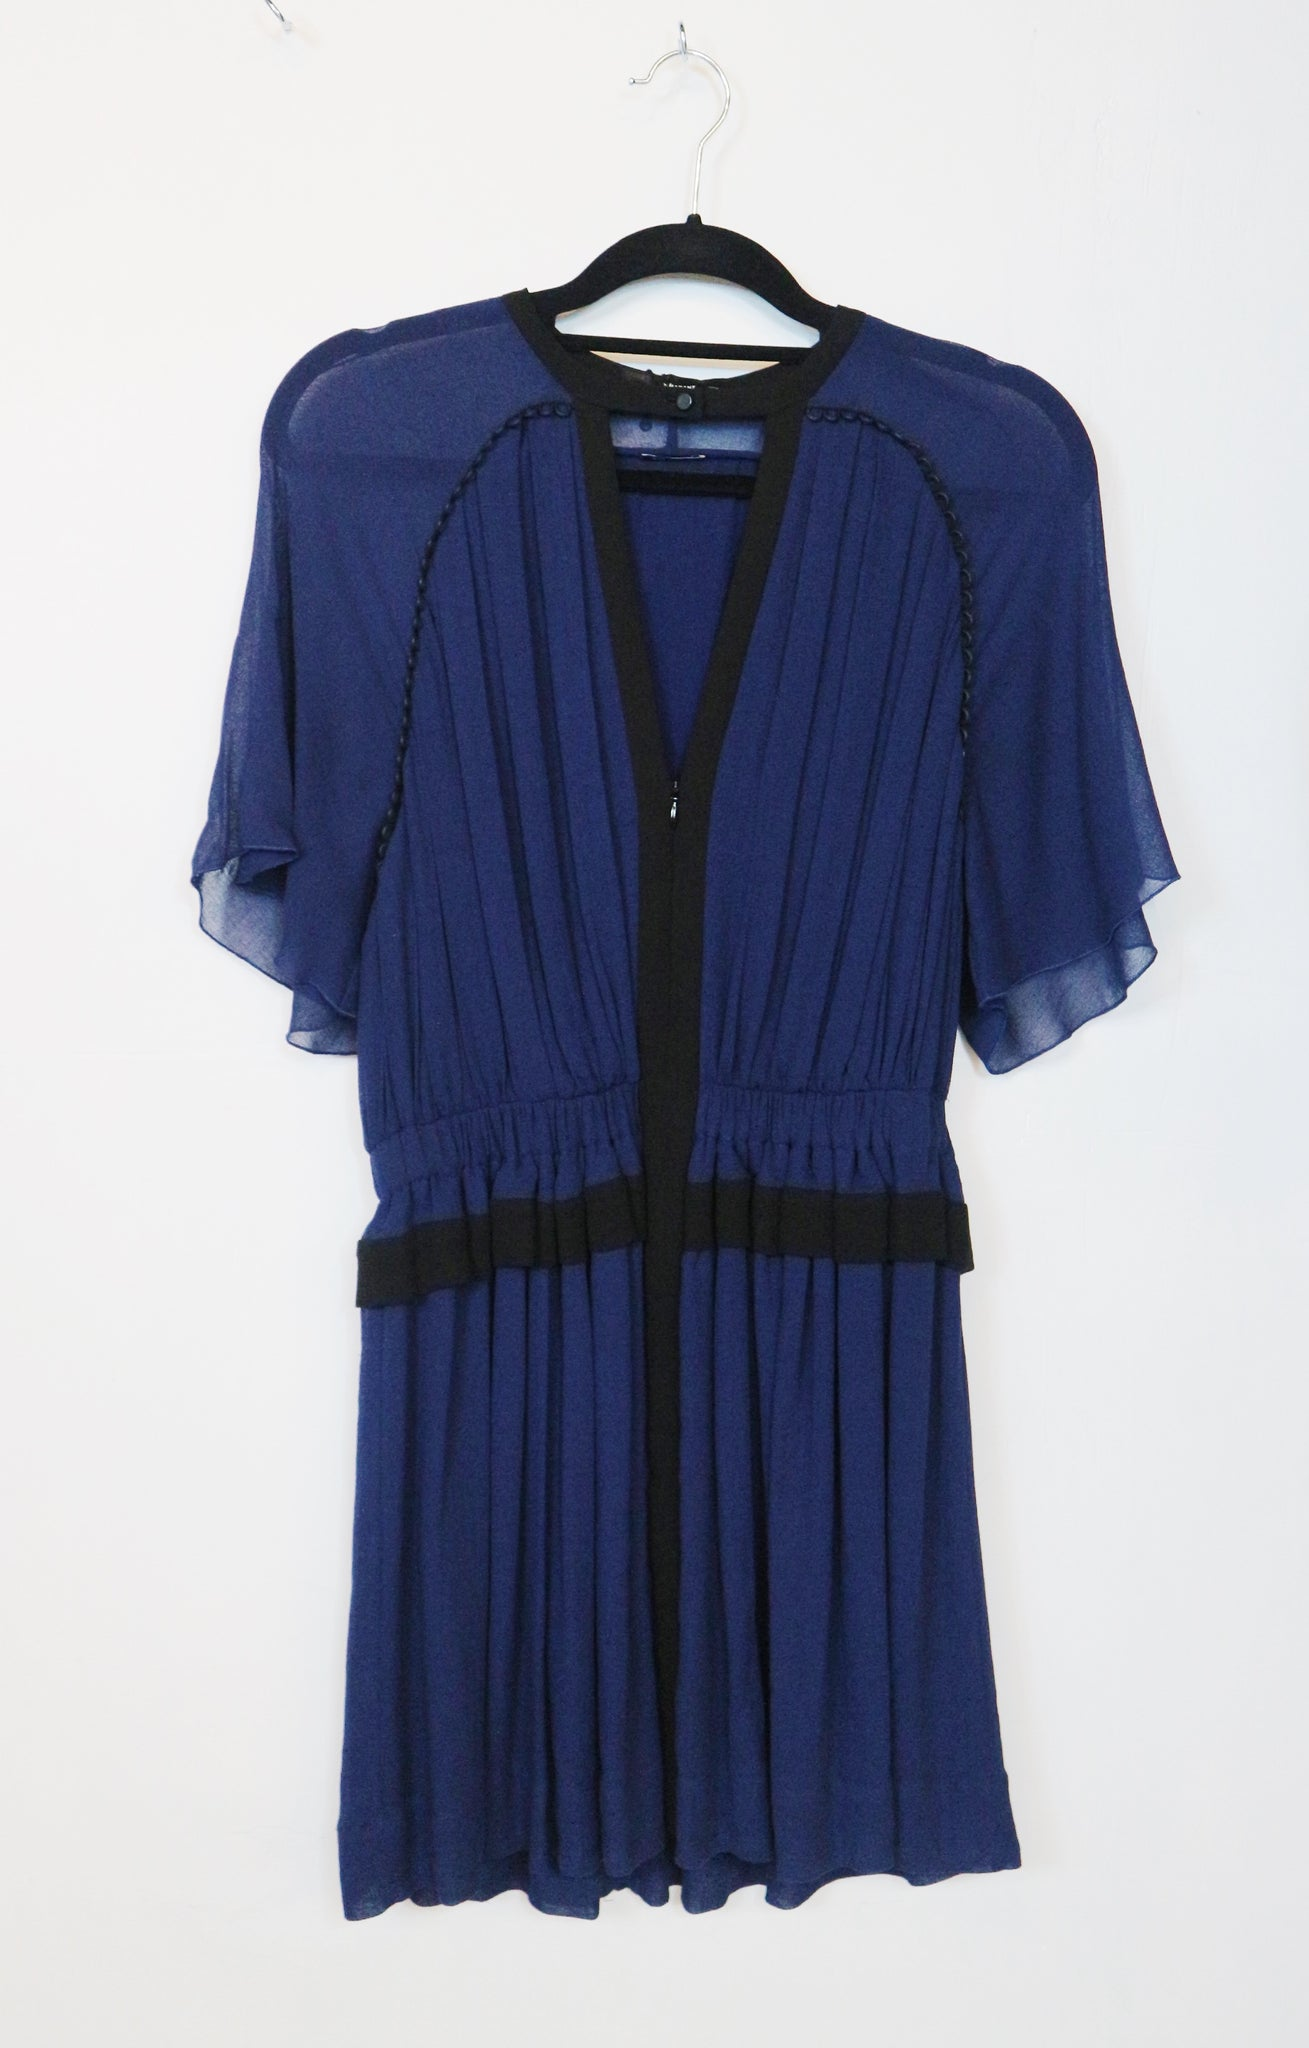 Isabel Marant Blue Sheer Dress